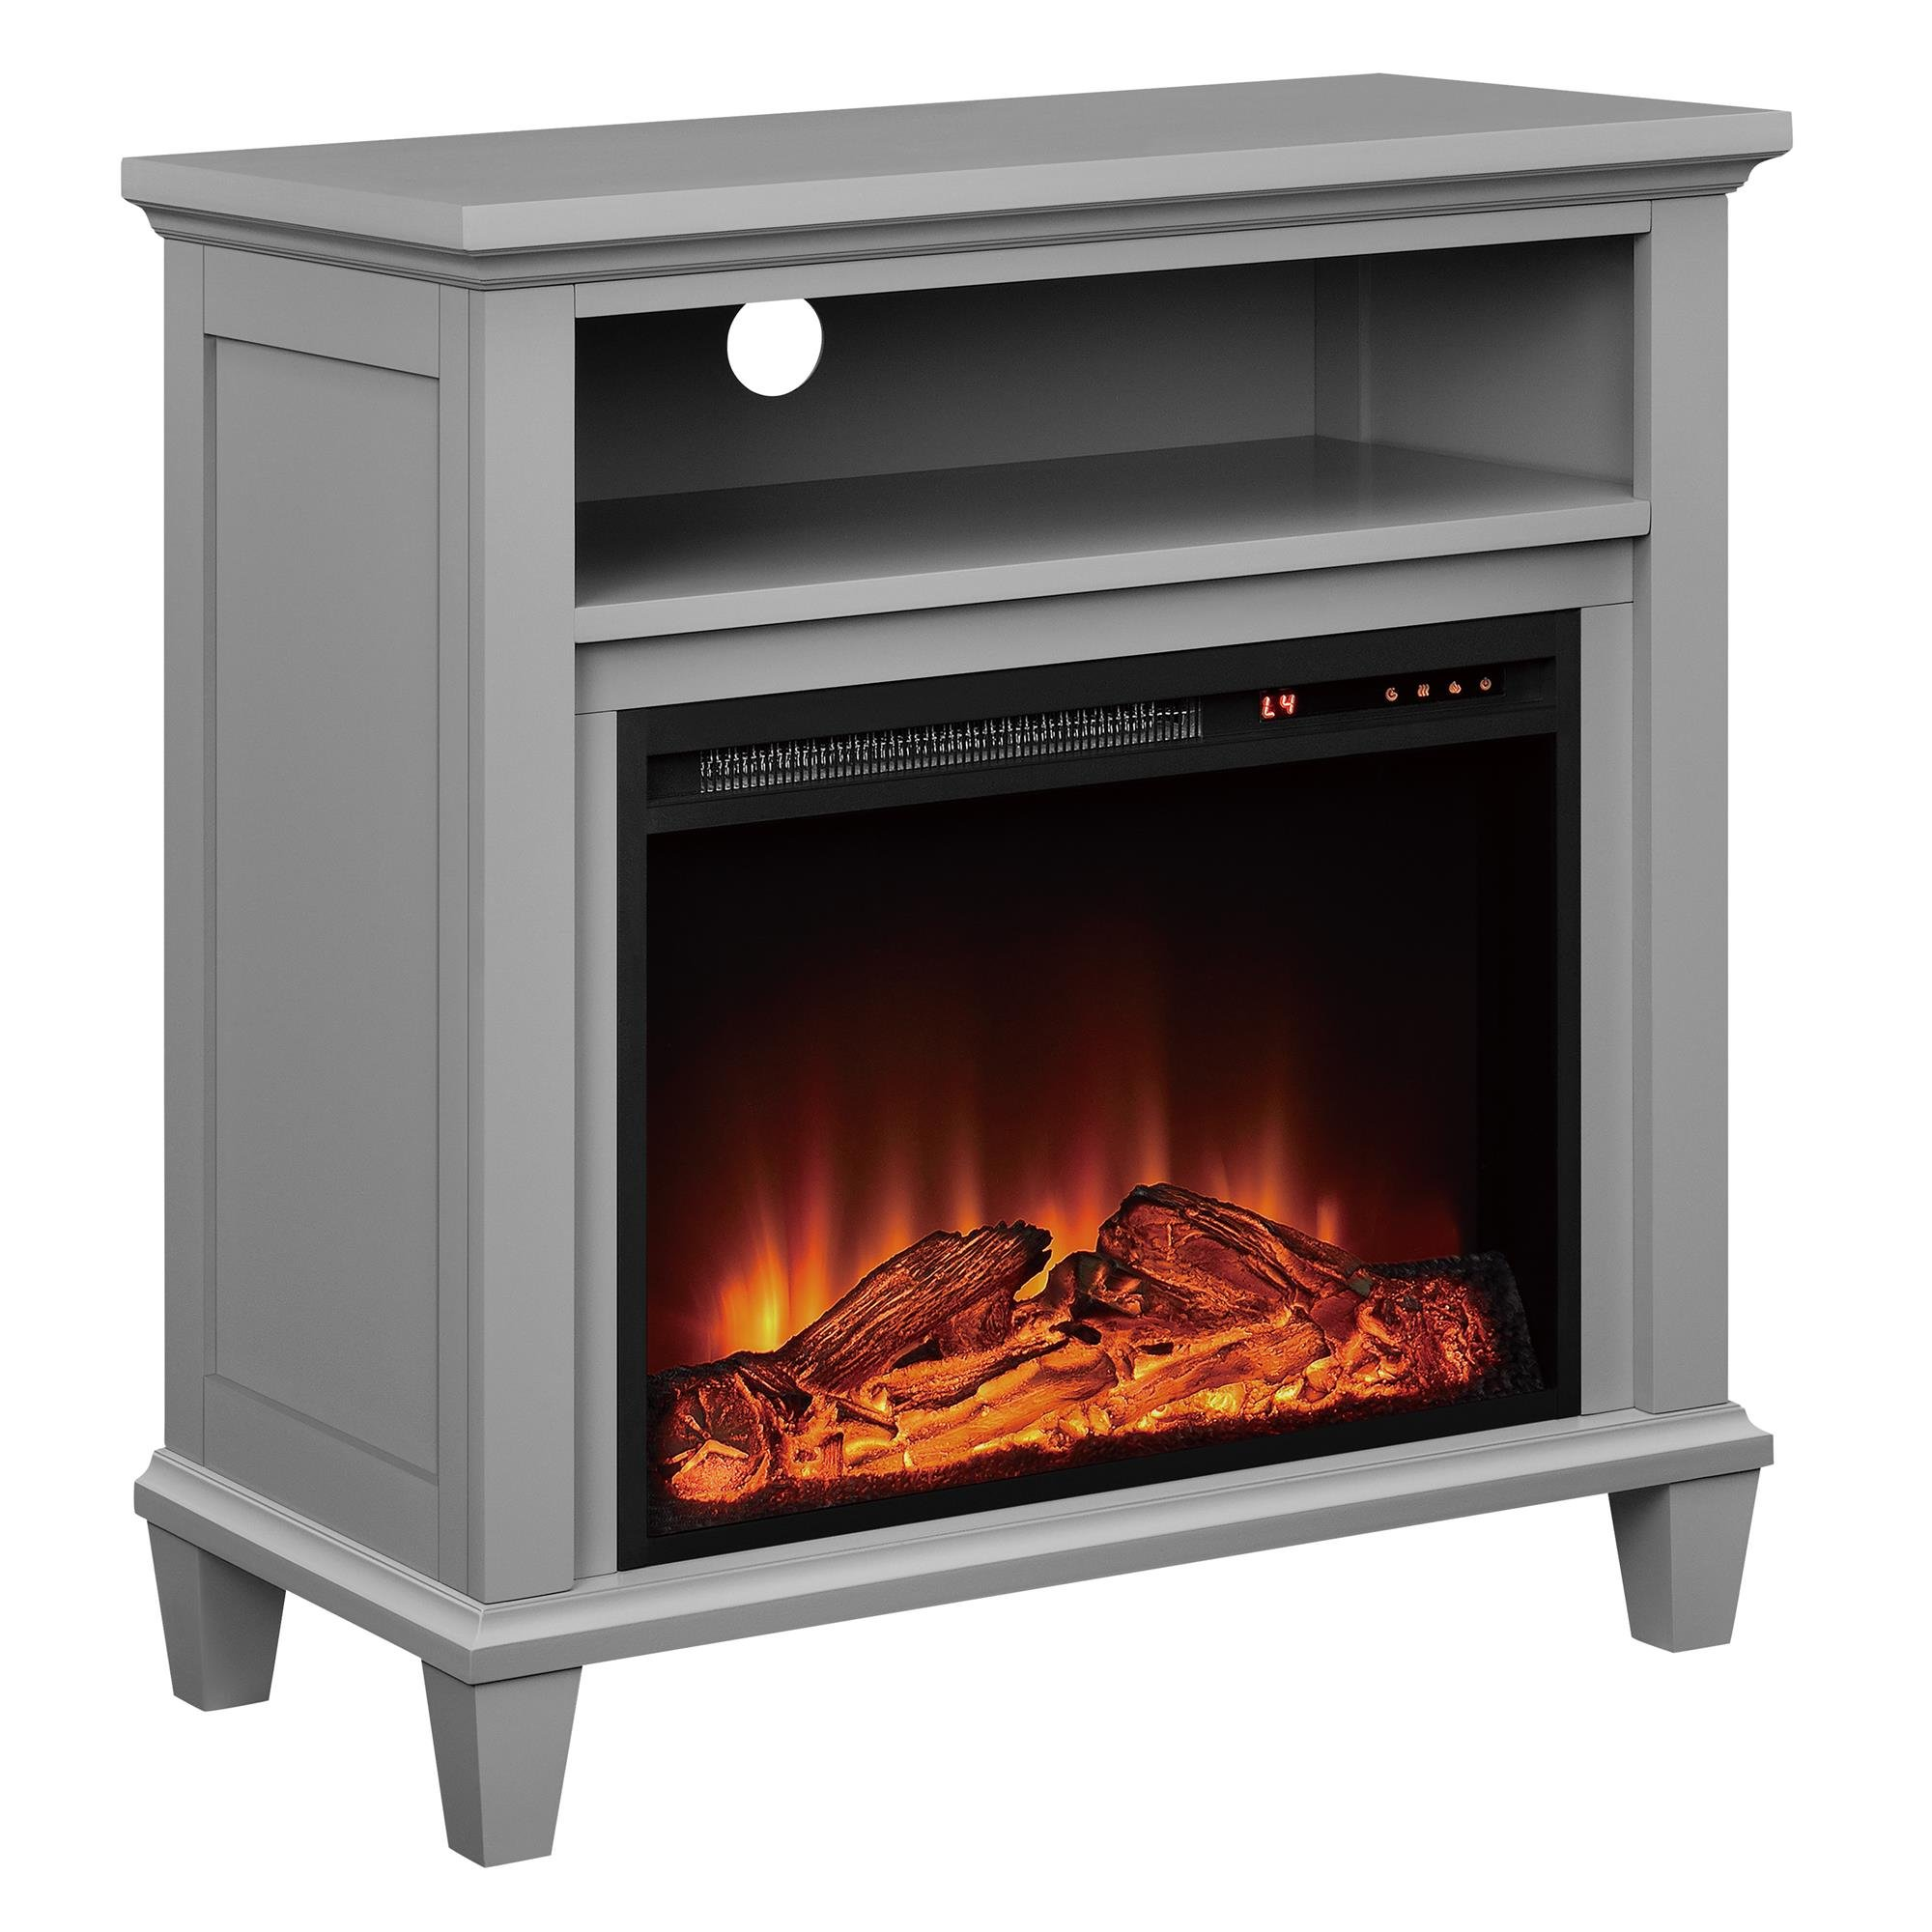 Ameriwood Home Ellington Electric Fireplace Accent Table TV Stand for TVs up to 32'', Gray